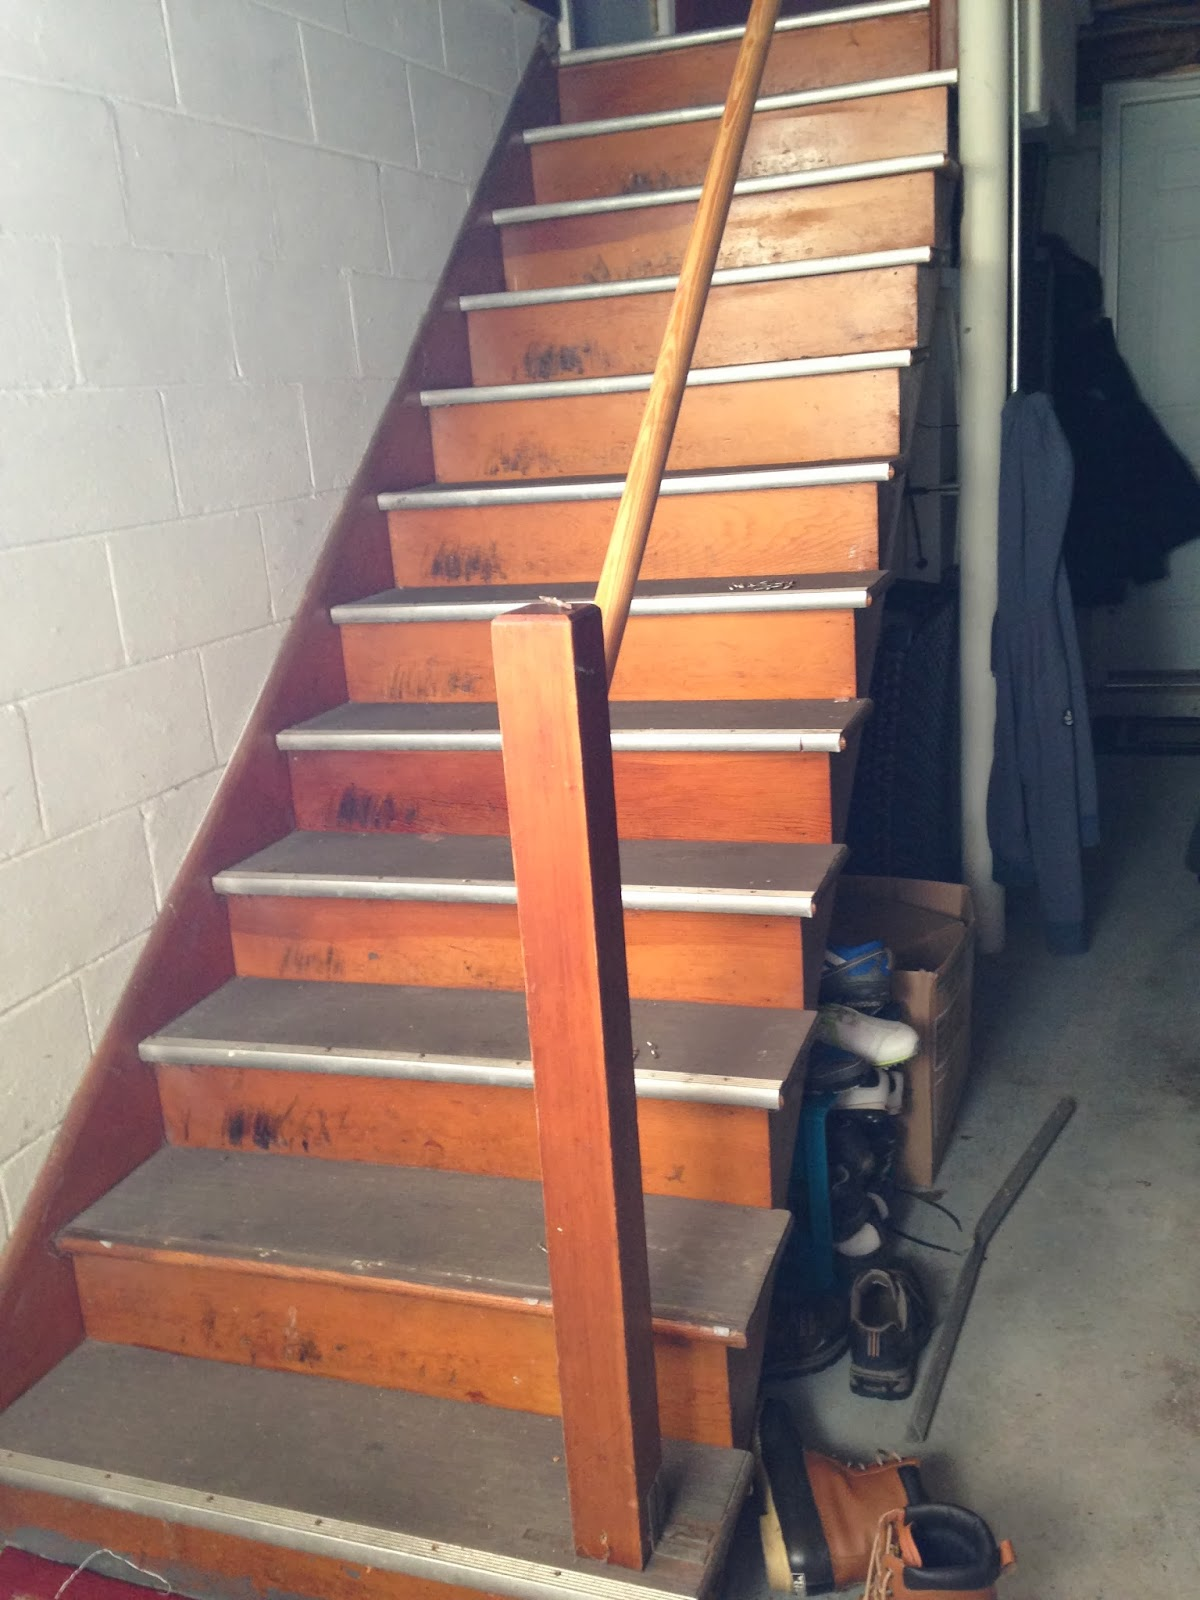 The Plan Was To Rip Up The Rubber Treads, Refinish The Natural Wood Treads  Underneath And Paint/stain The Rest Of The Stairs And Handrail.